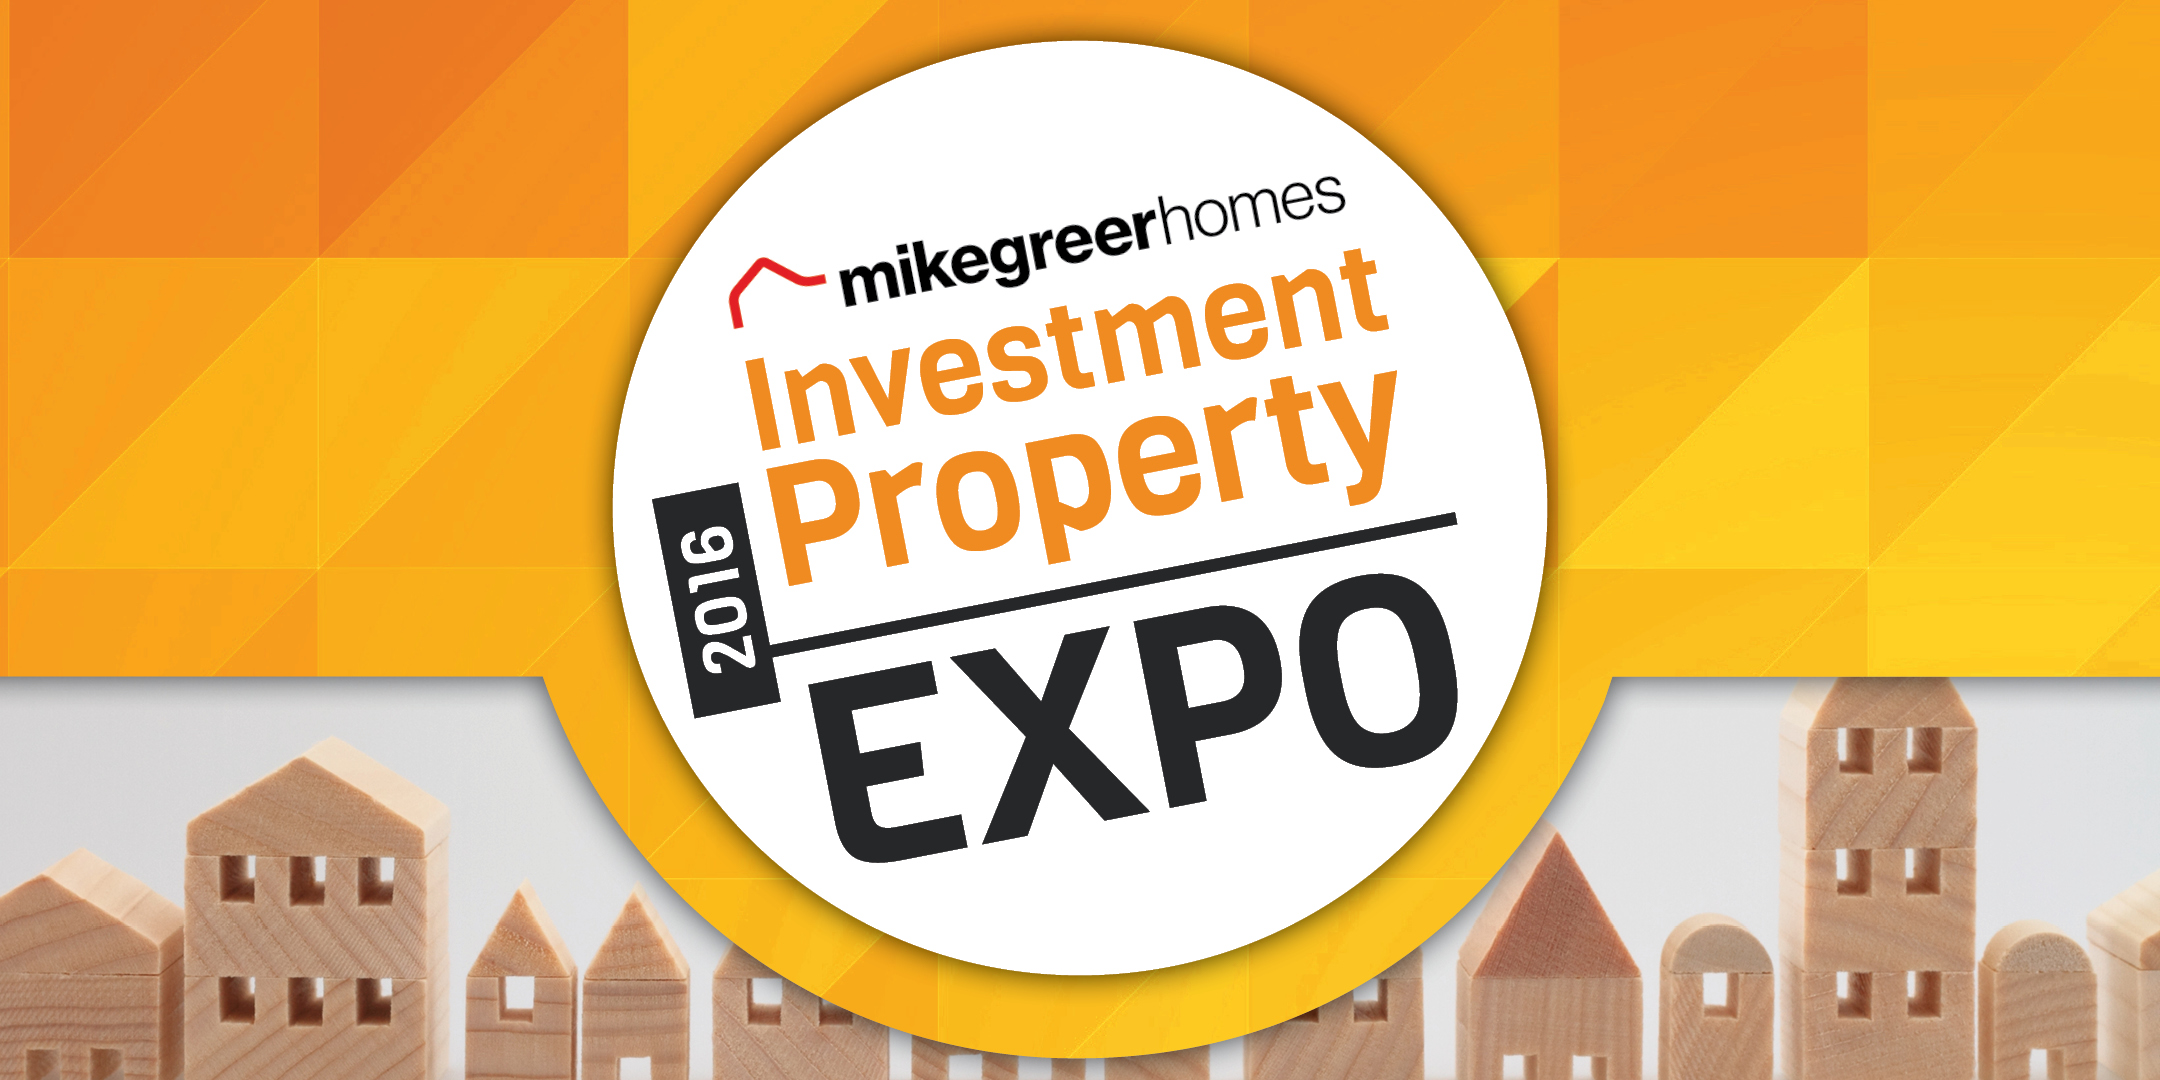 Invesment Property Expo 2016